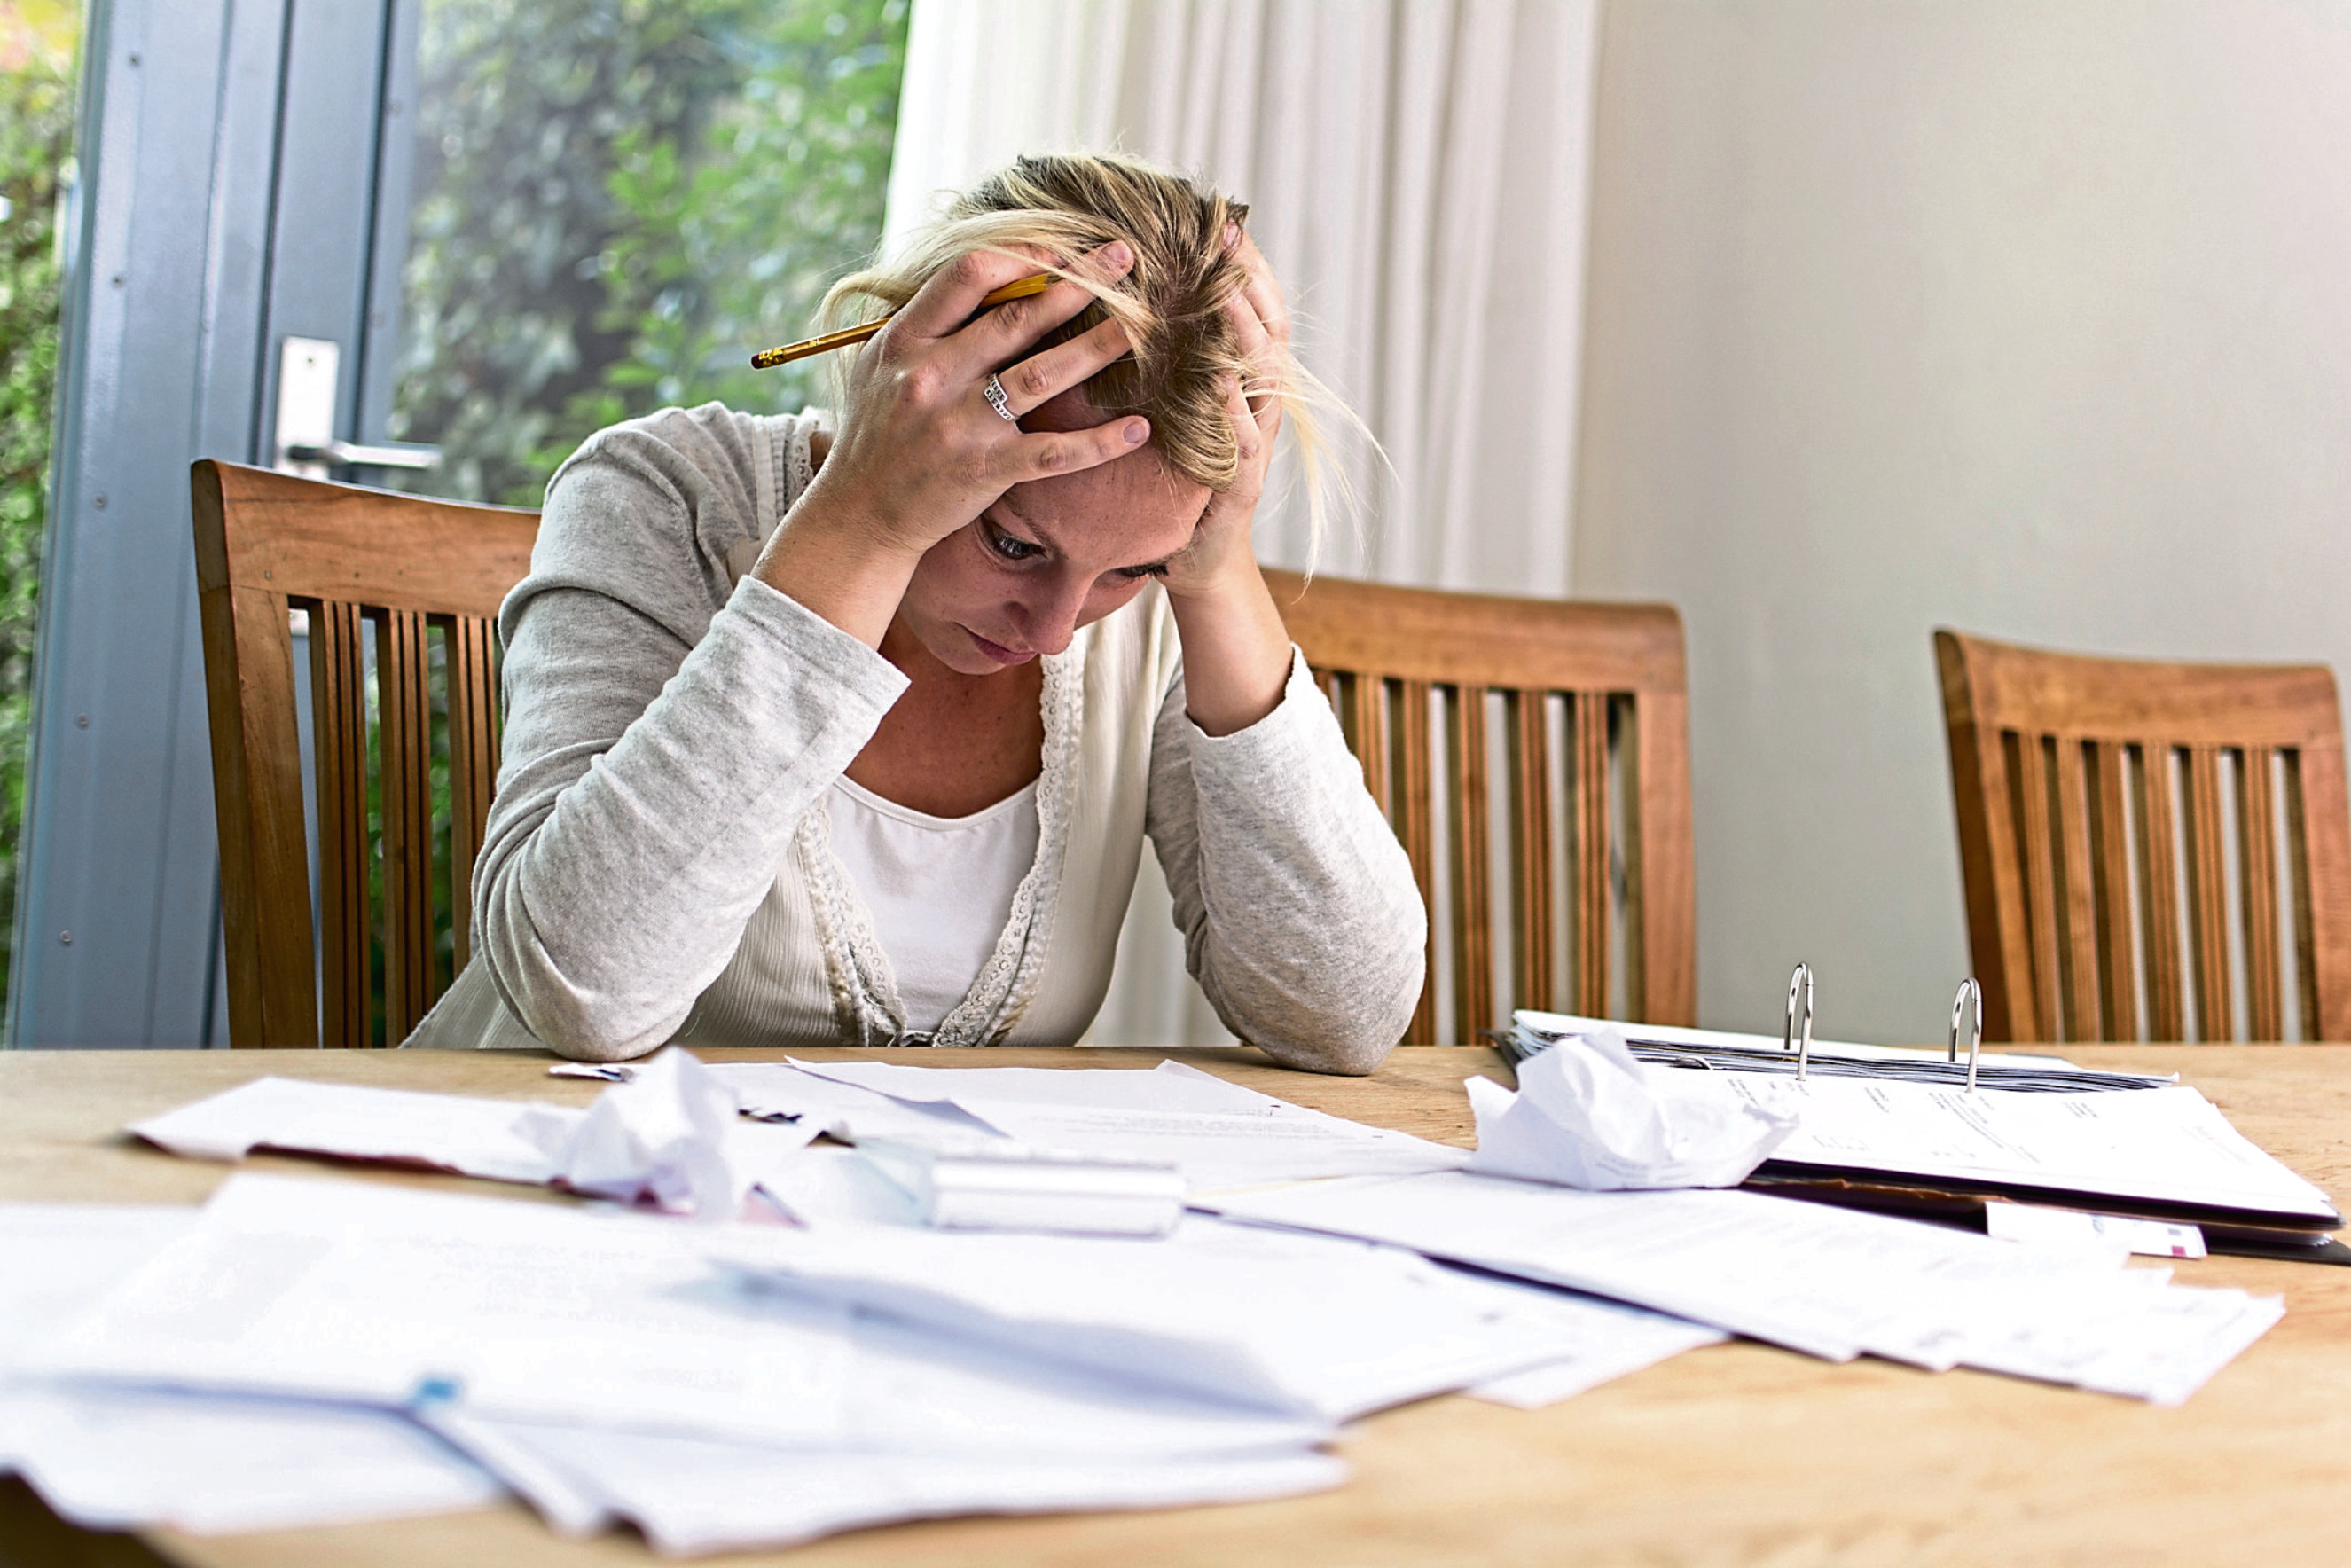 Day-to-day costs can become a huge problem for those in debt